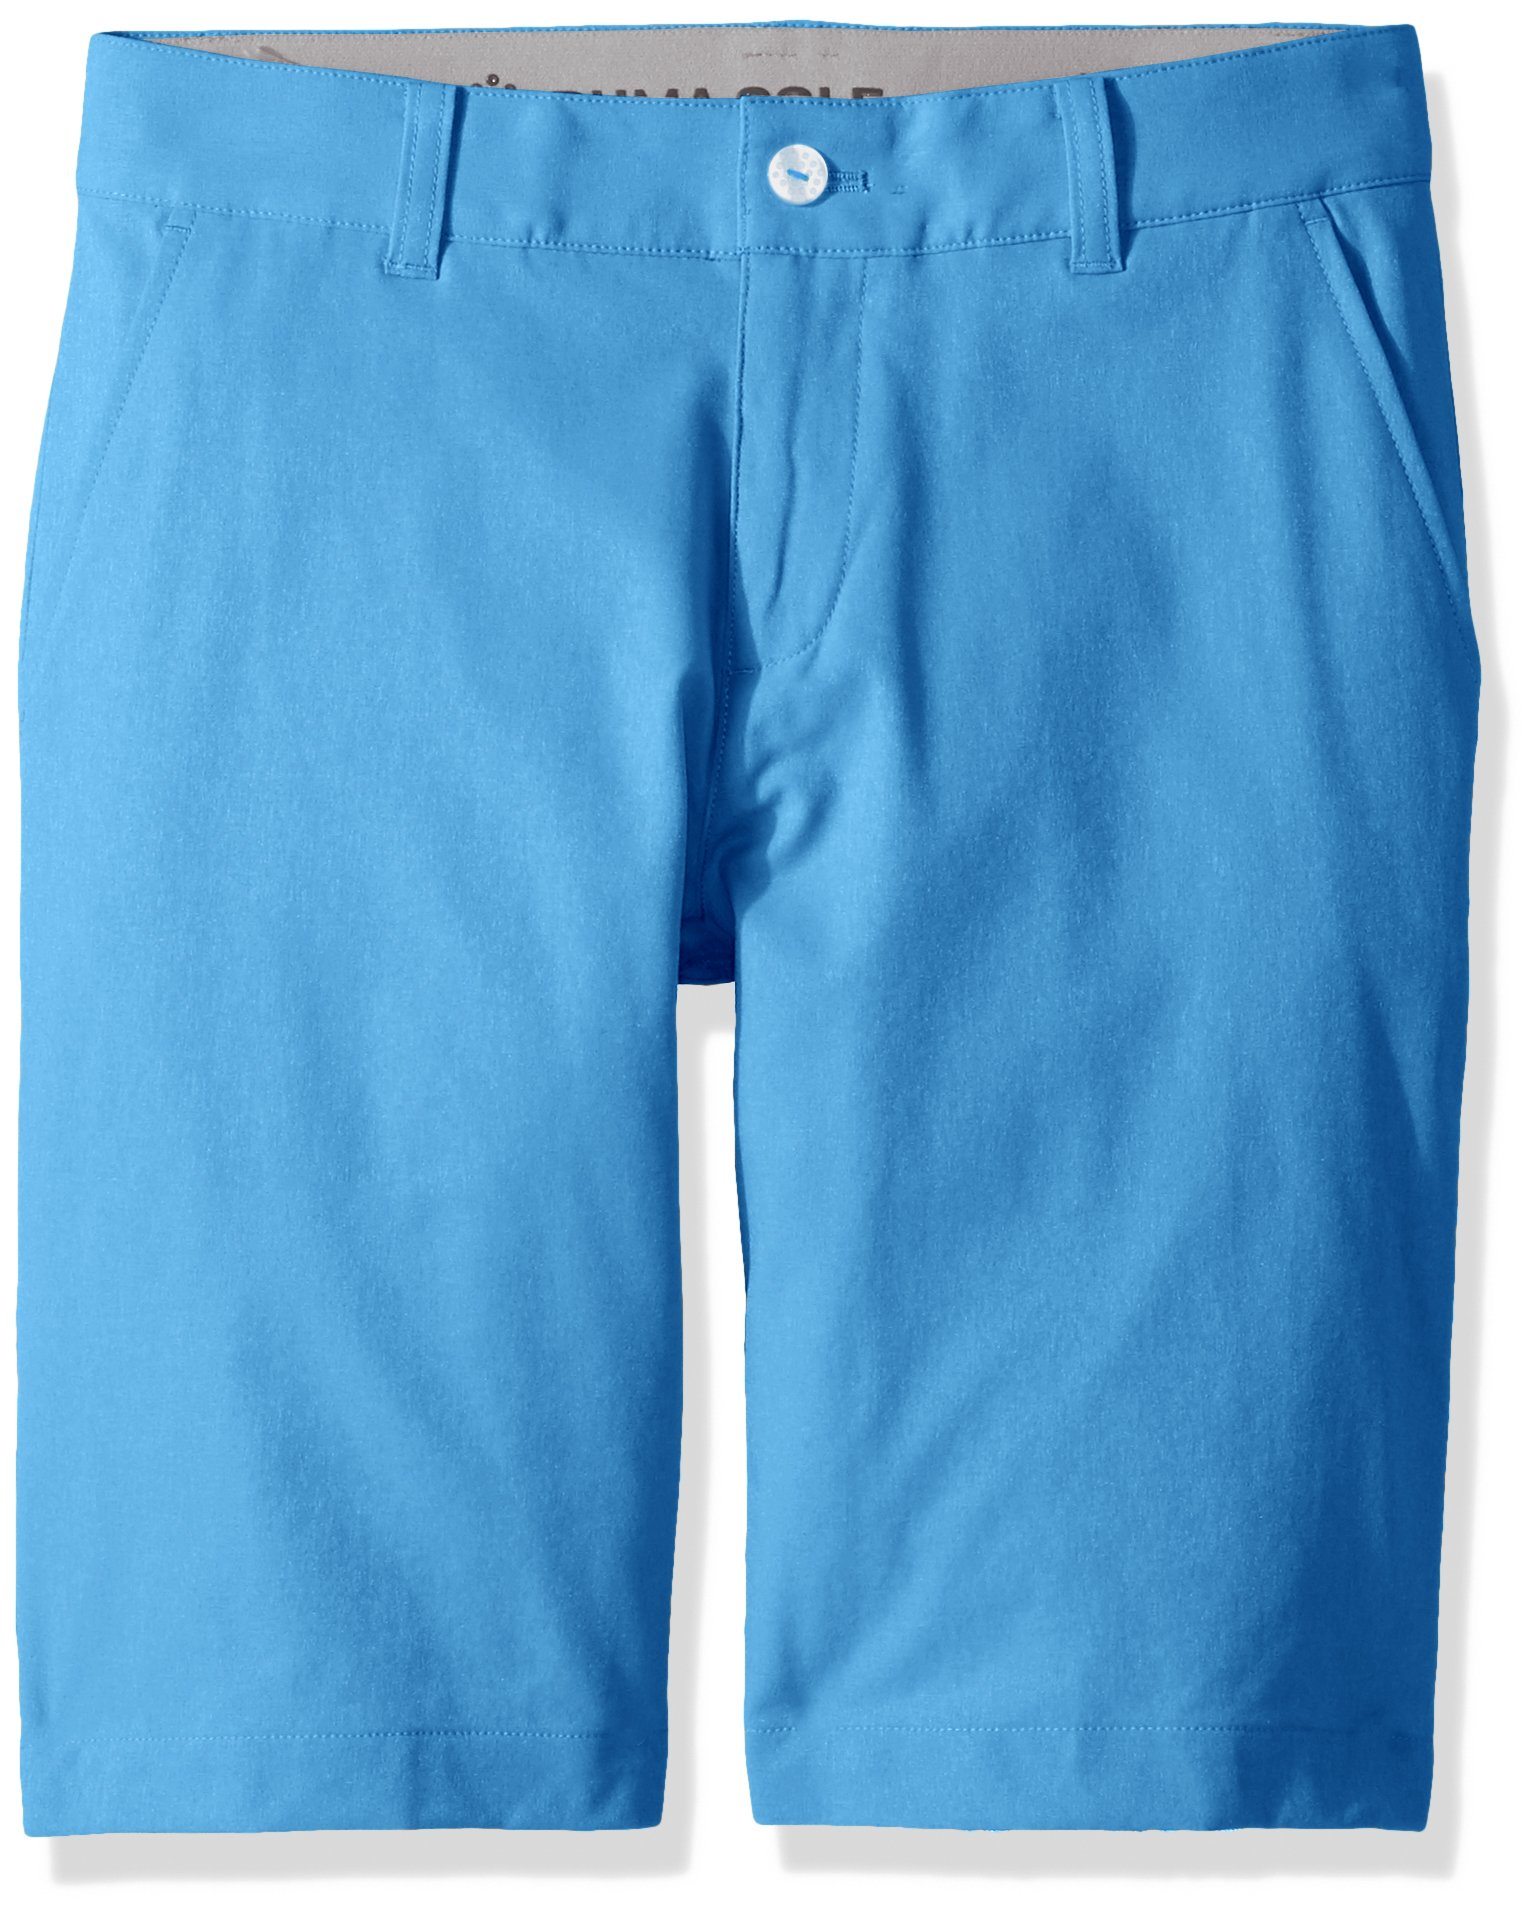 PUMA Golf Teen 2018 Boy's Heather Pounce Short, Marina, X-Small by PUMA